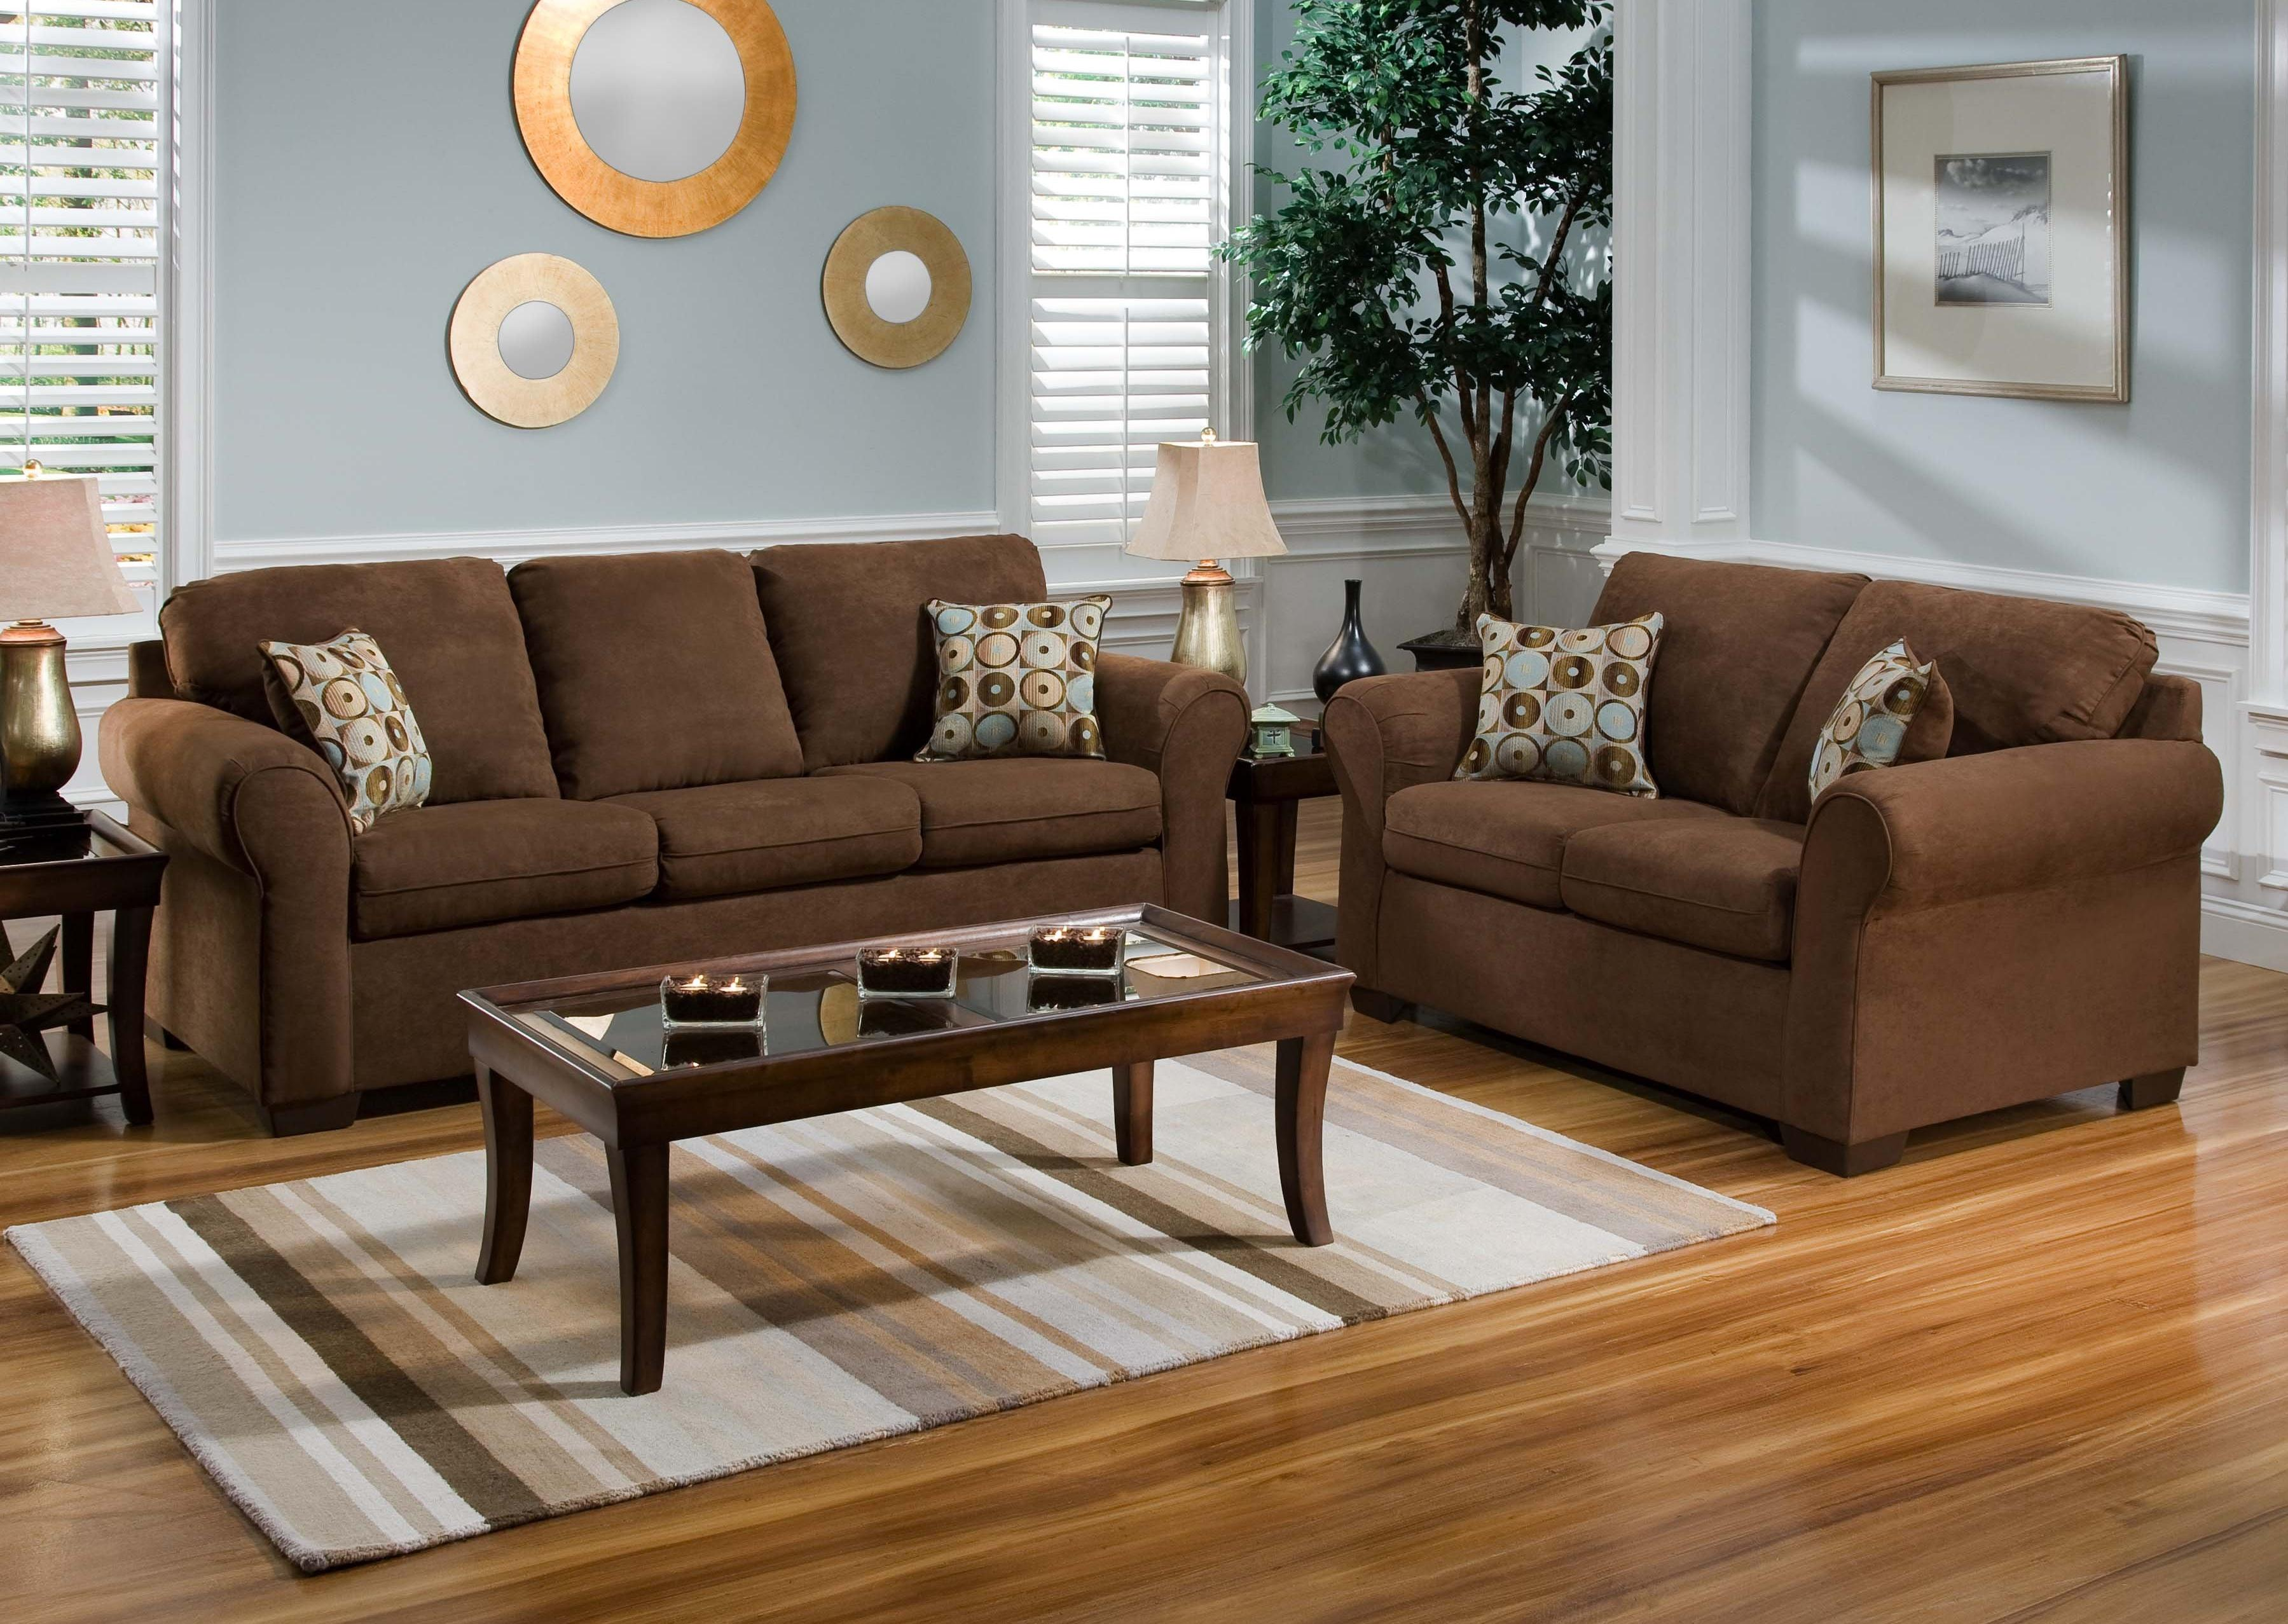 Image of: Light Brown Living Room